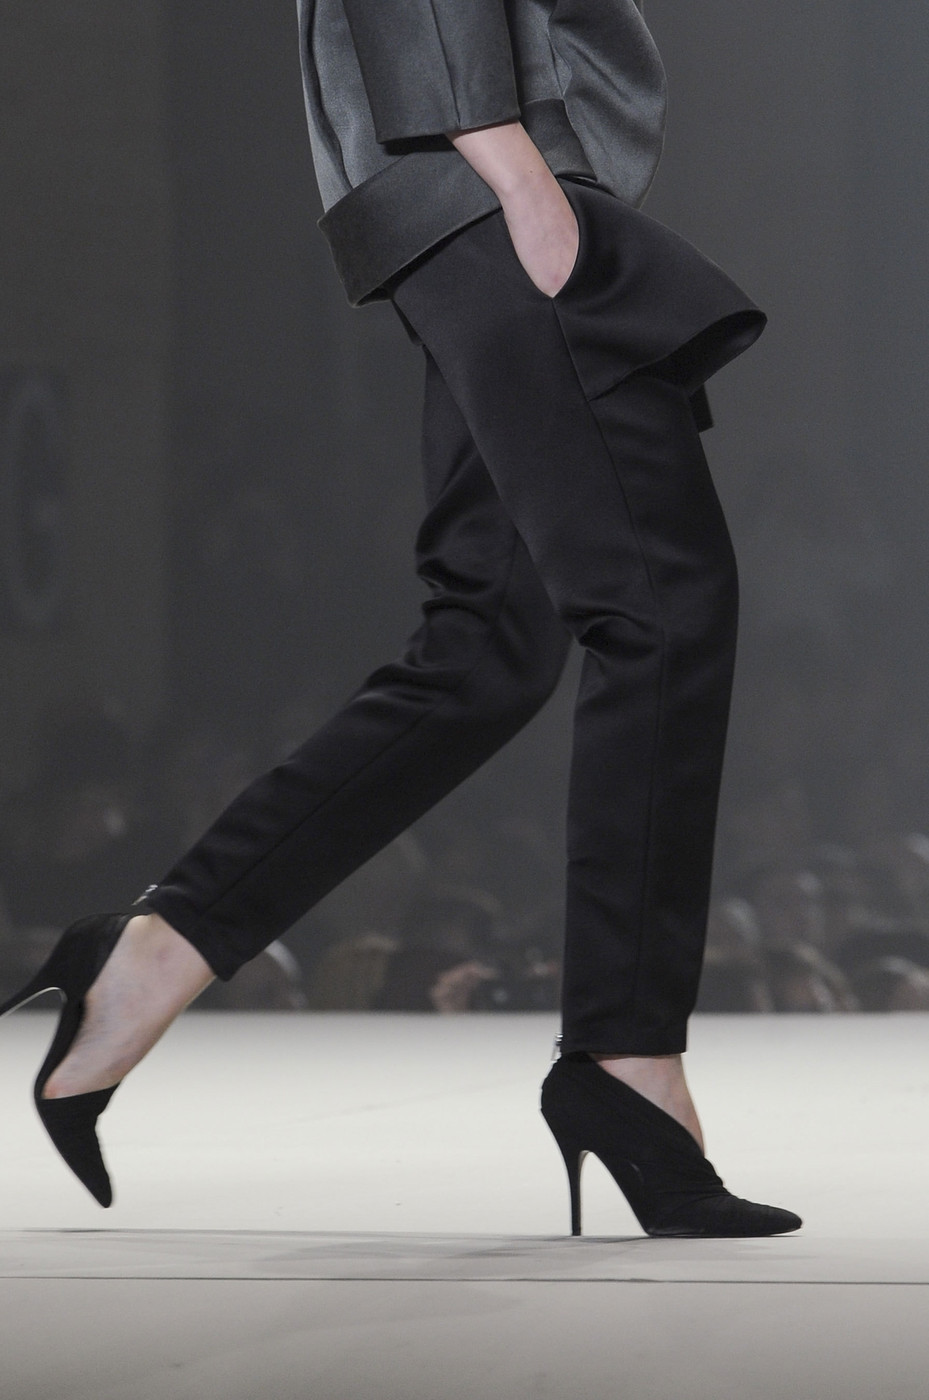 Oooh A. Wang. You did well this season. How good is this shot? These pants and shoes are pretty killer.